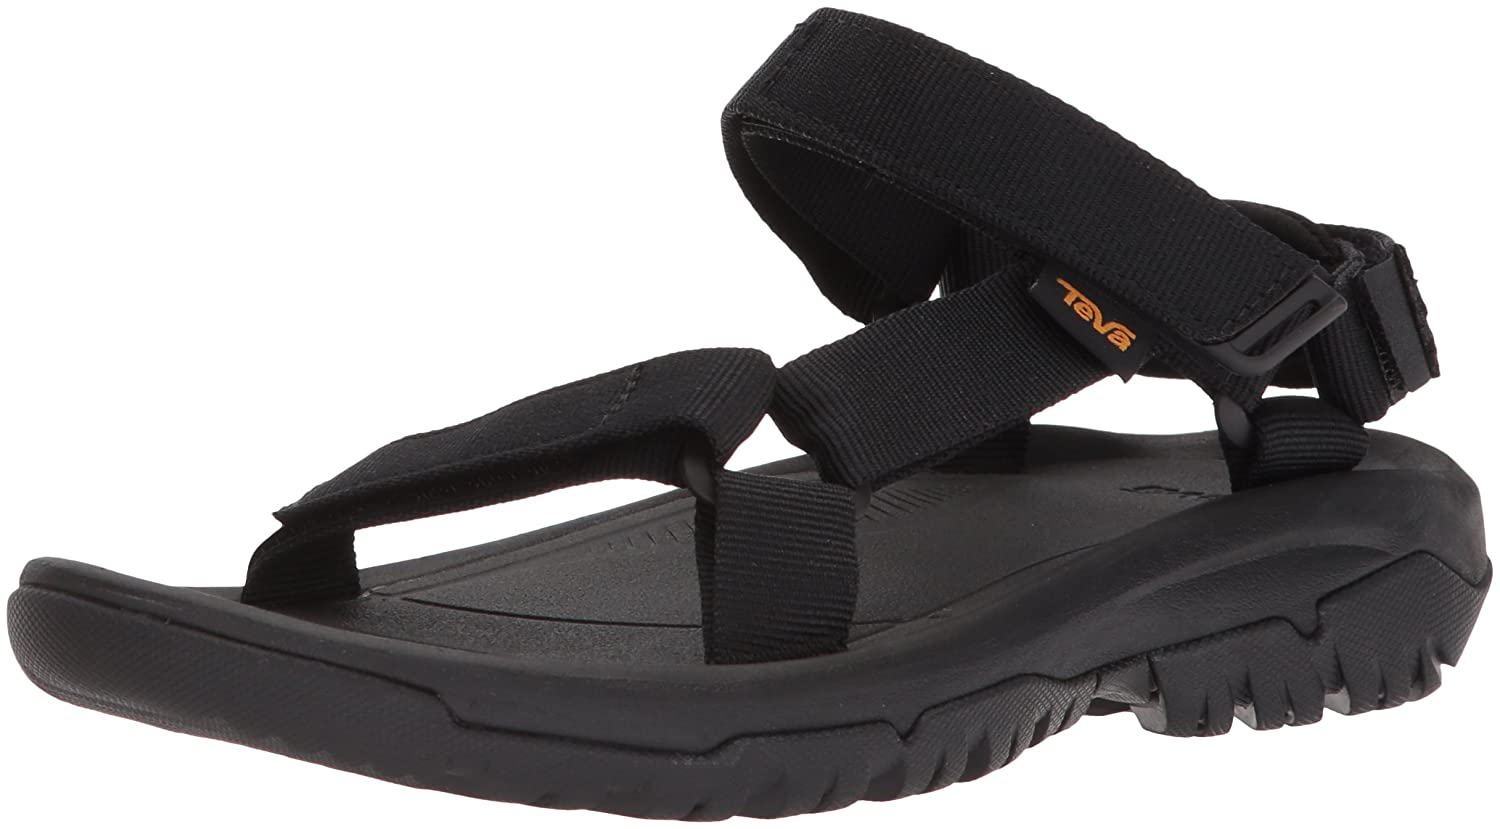 66a3e353717c Amazon.com  Teva Women s W Hurricane Xlt2 Sport Sandal  Shoes